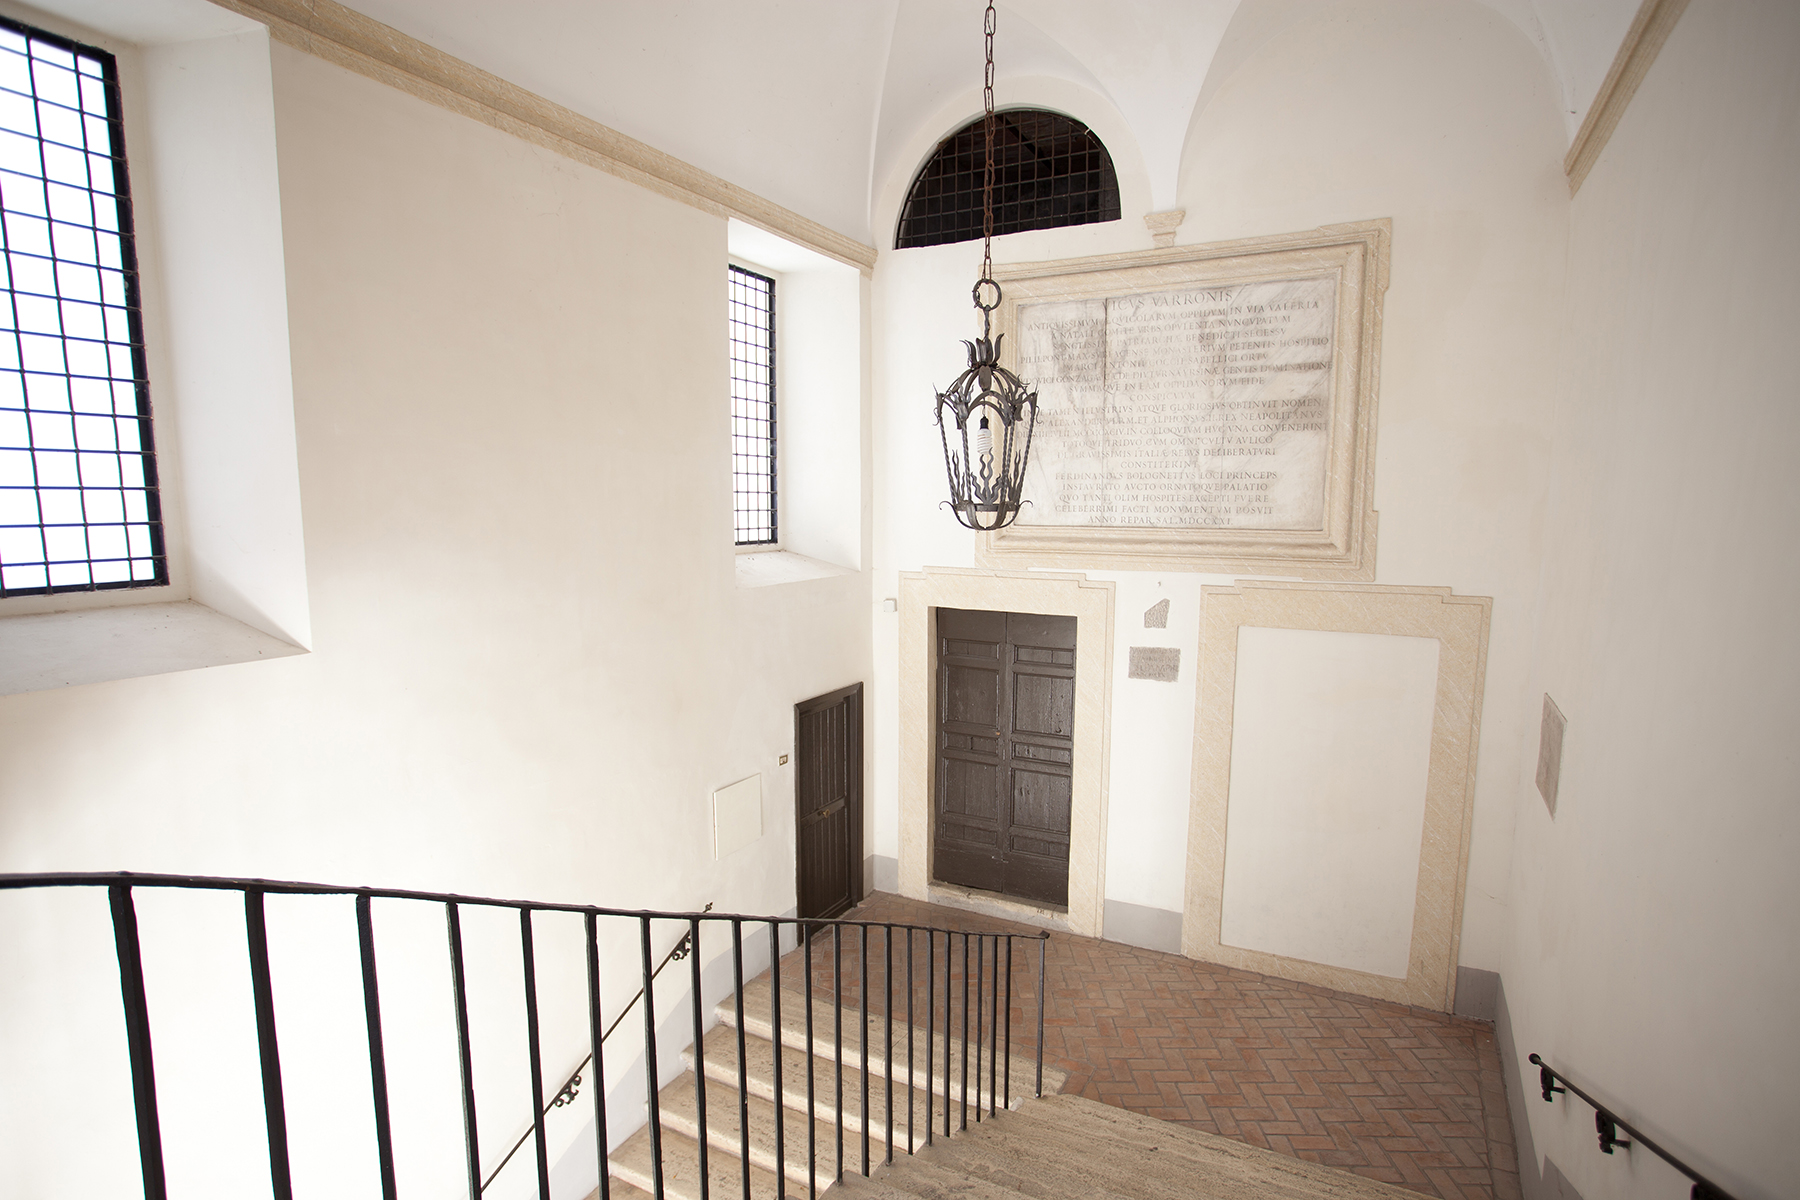 Additional photo for property listing at Vicovaro Castle Via Regina Margherita Vicovaro, Rome 00029 Italie